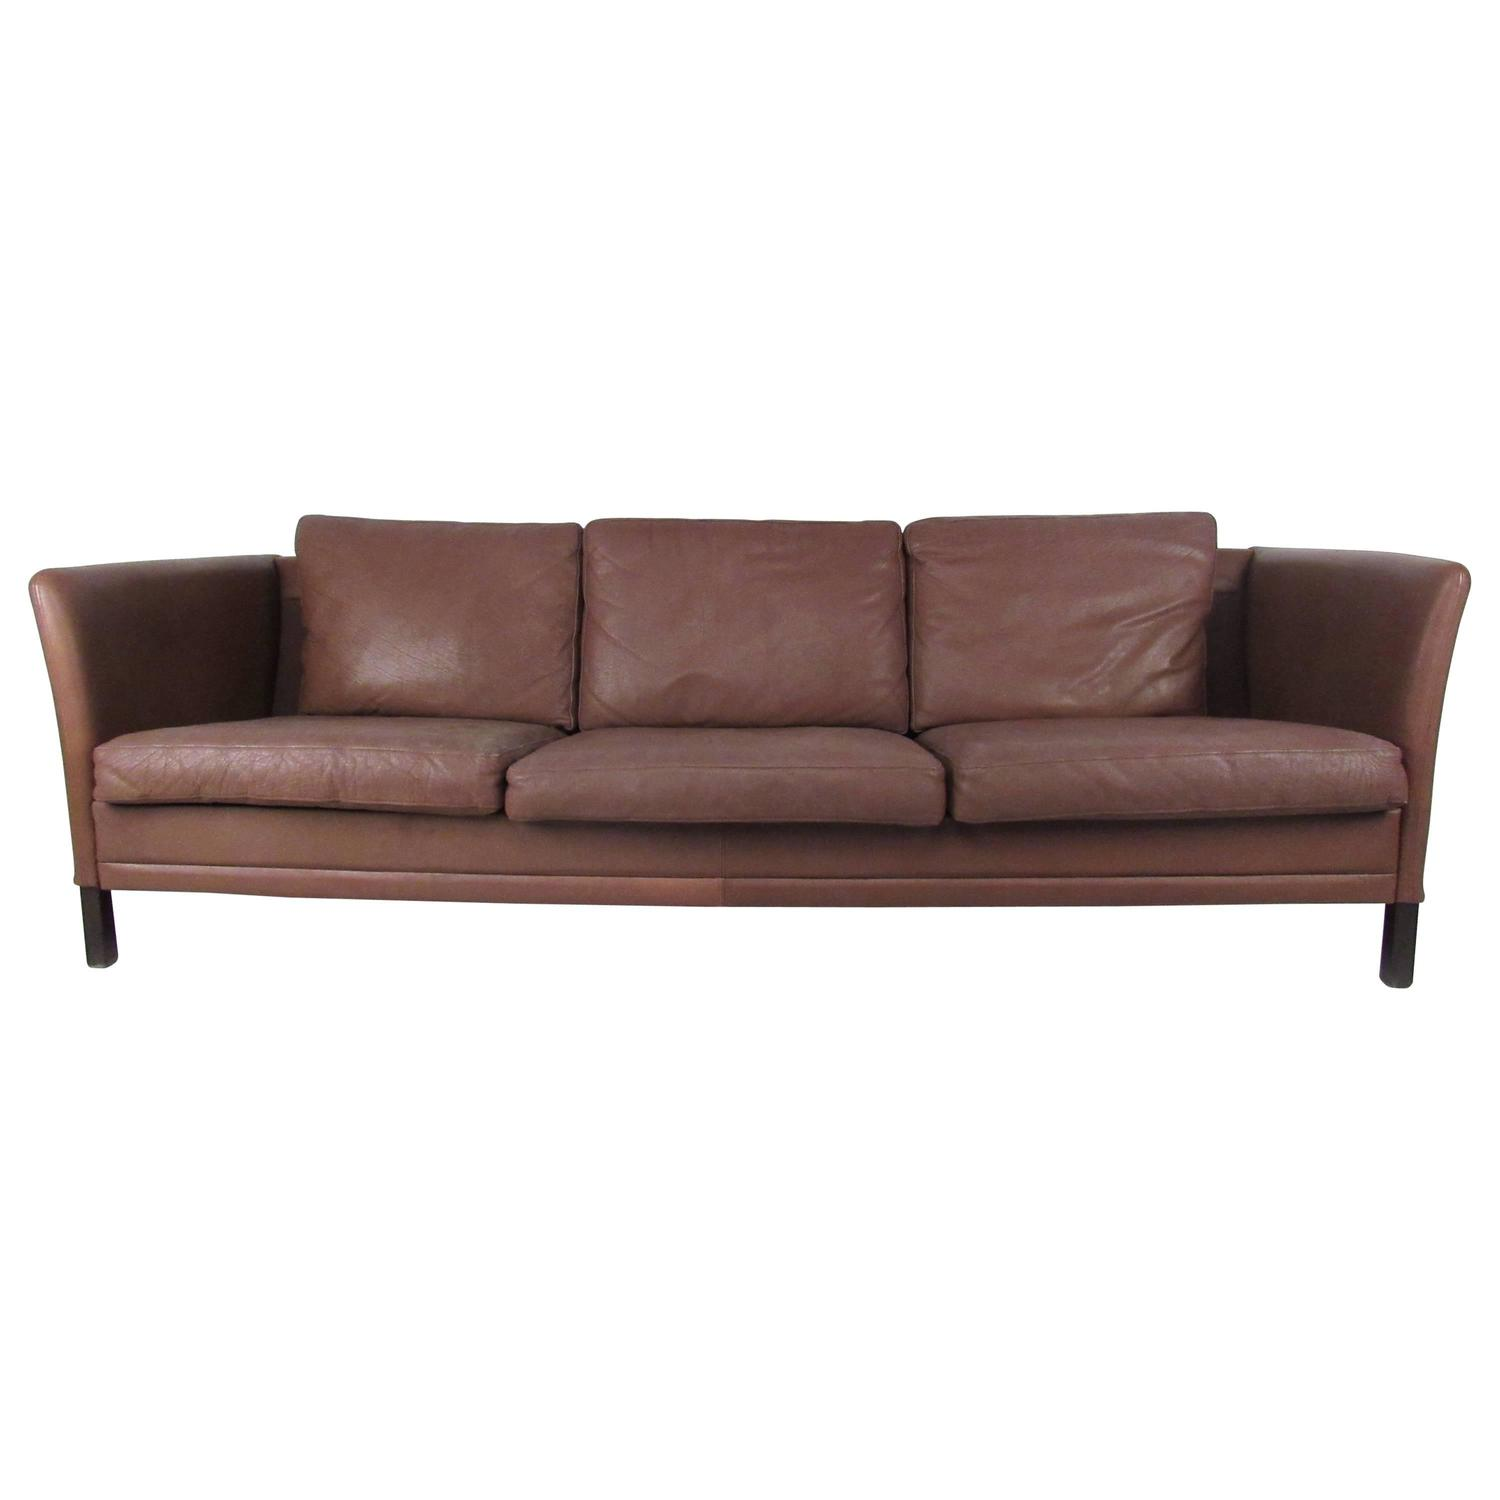 impressive mid century danish modern leather sofa for sale